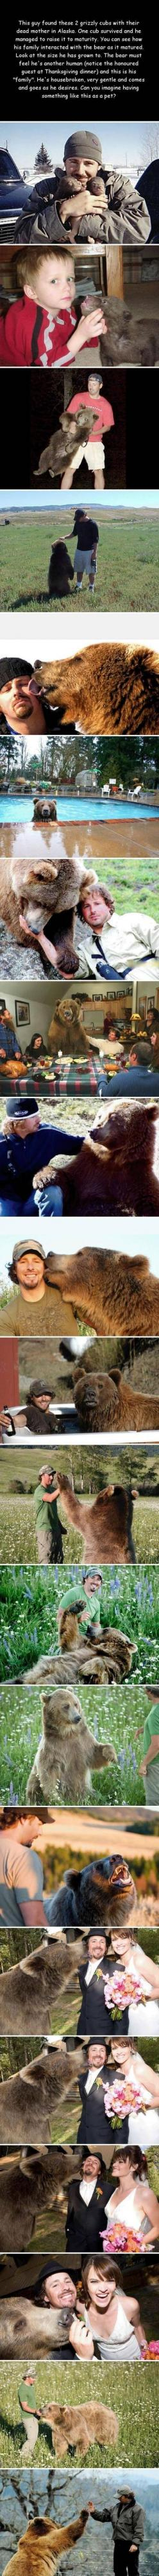 Thanks Pinterest. Now I want a bear.: Sweet, Humanity Restored, Adorable Animals, Wild Animals, Pet Bear, Bear Cubs, Grizzly Bears